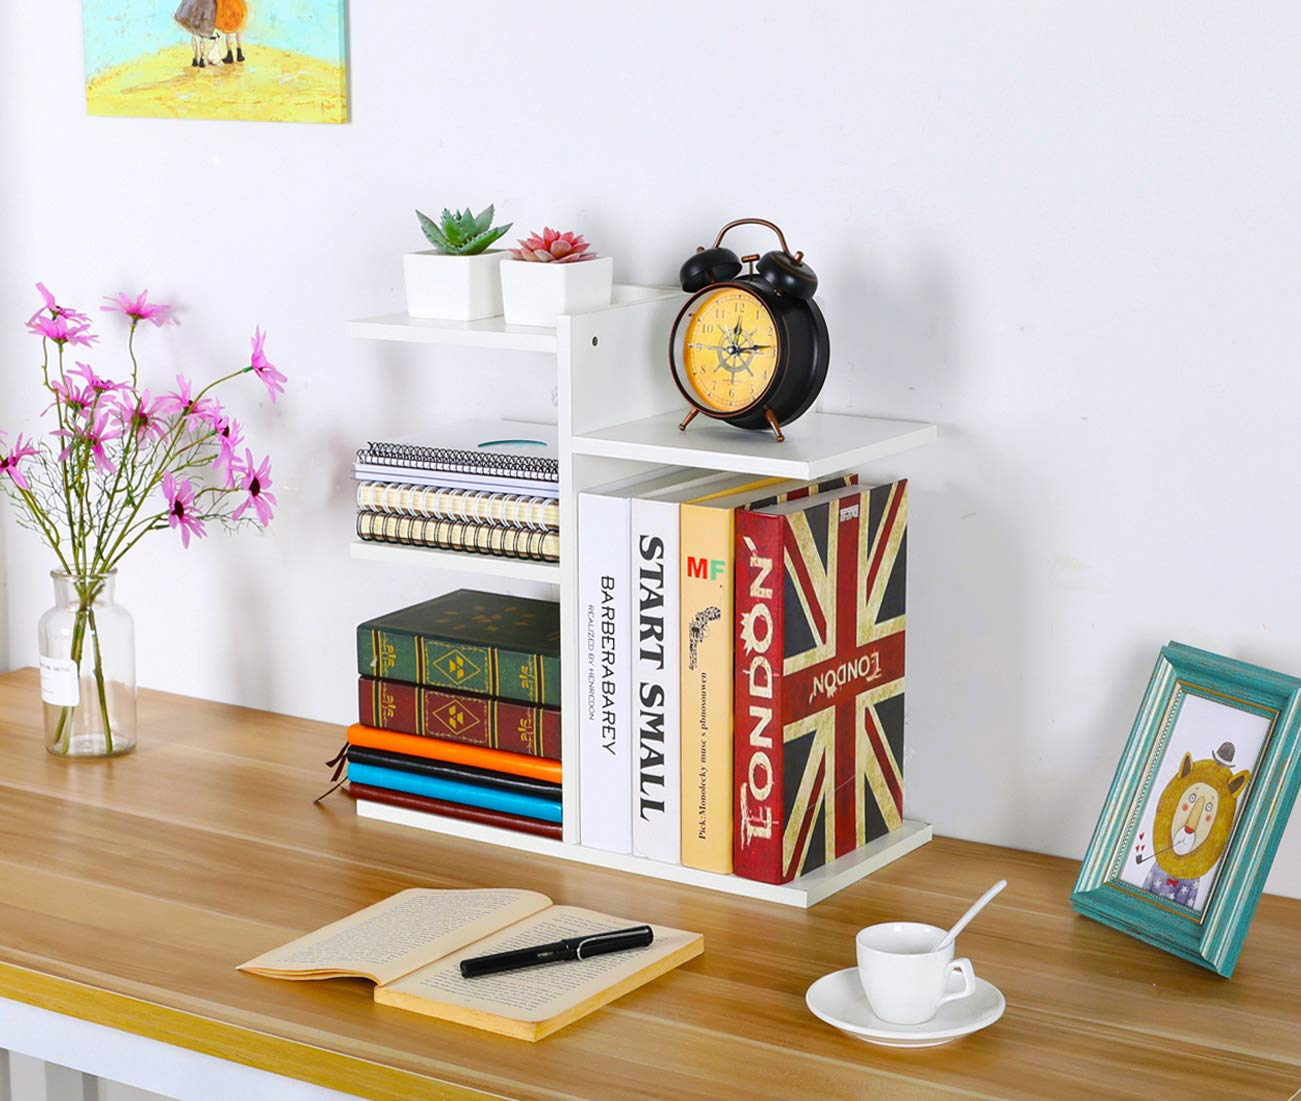 PAG Wood Desktop Bookshelf Assembled Countertop Bookcase Literature Holder Accessories Display Rack Office Supplies Desk Organizer, White by PAG (Image #8)